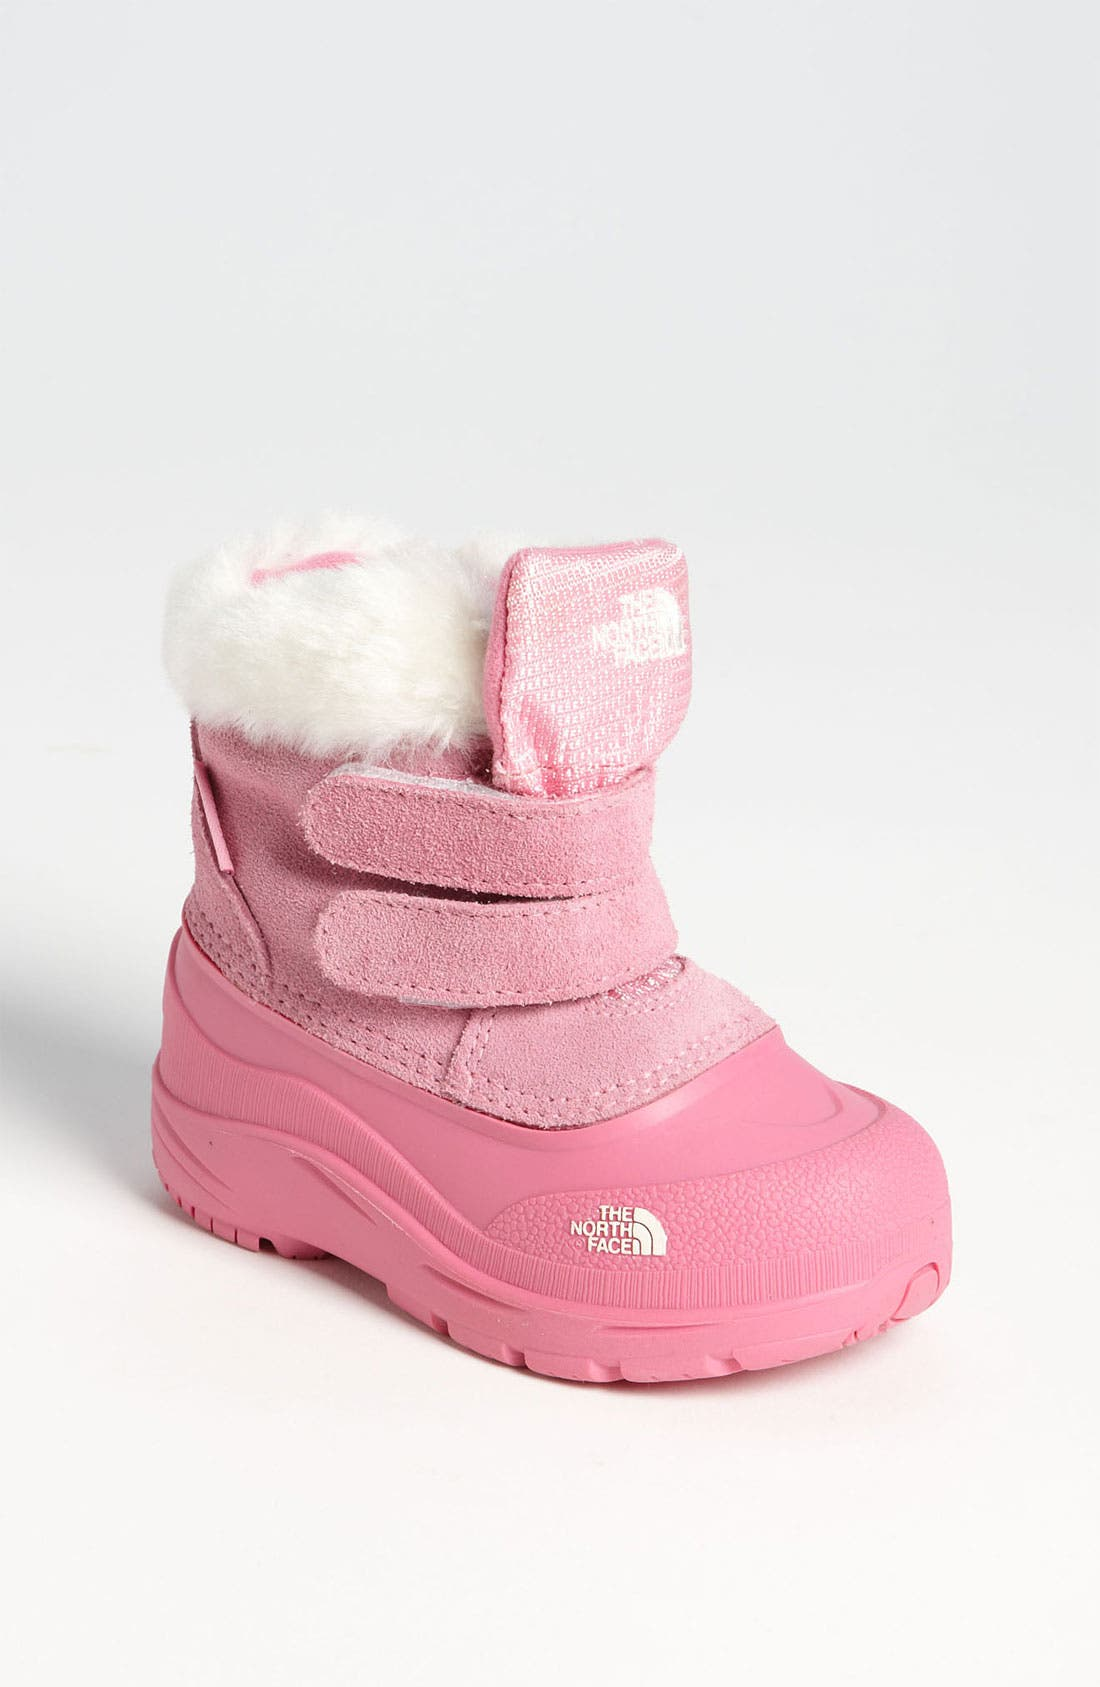 Main Image - The North Face 'McMurdo' Boot (Walker & Toddler)